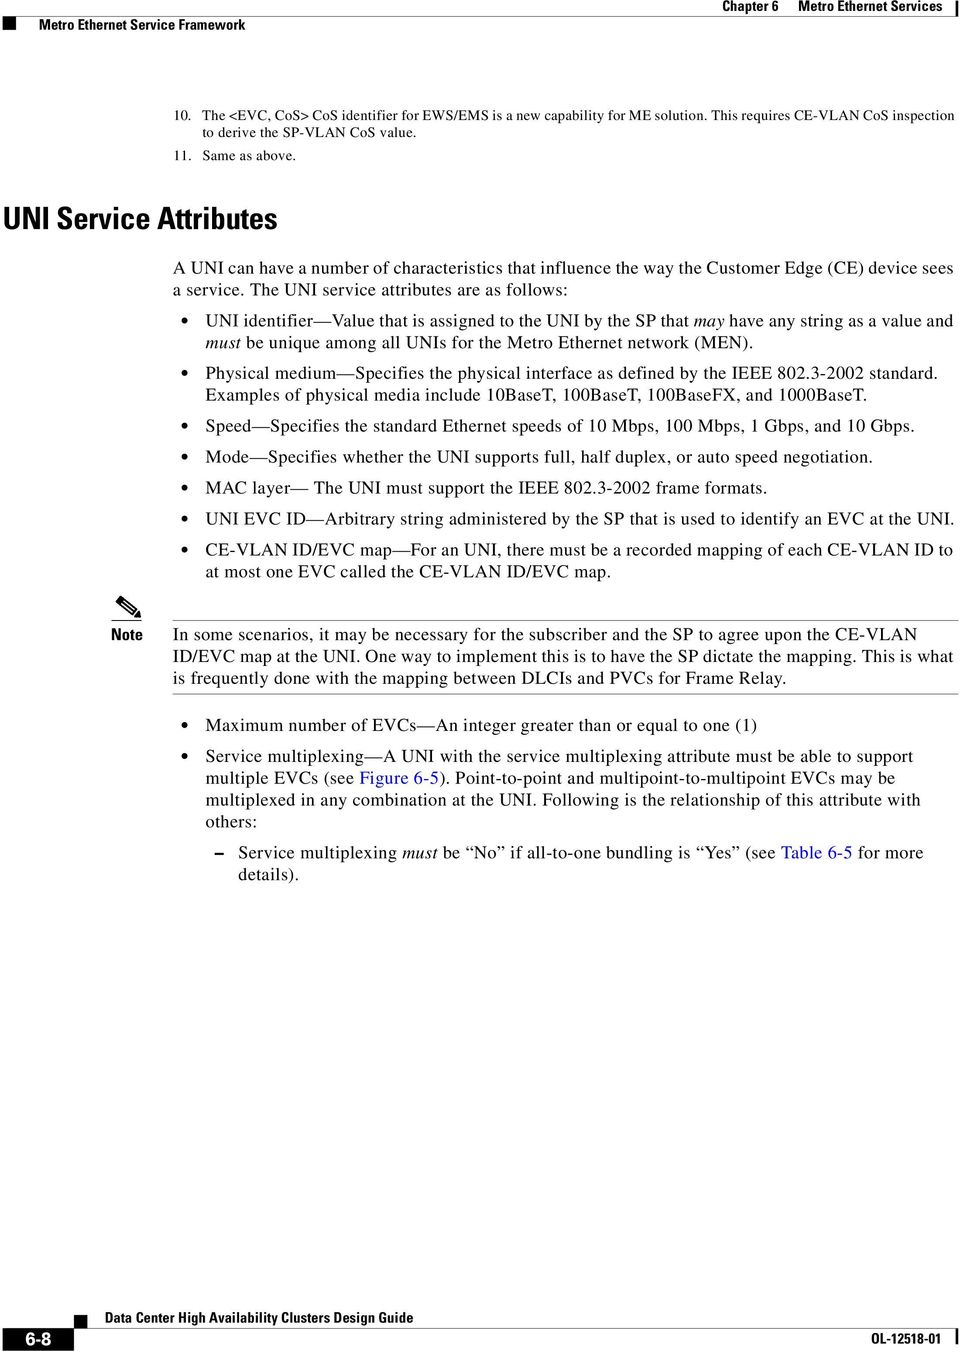 The UNI service attributes are as follows: UNI identifier Value that is assigned to the UNI by the SP that may have any string as a value and must be unique among all UNIs for the Metro Ethernet